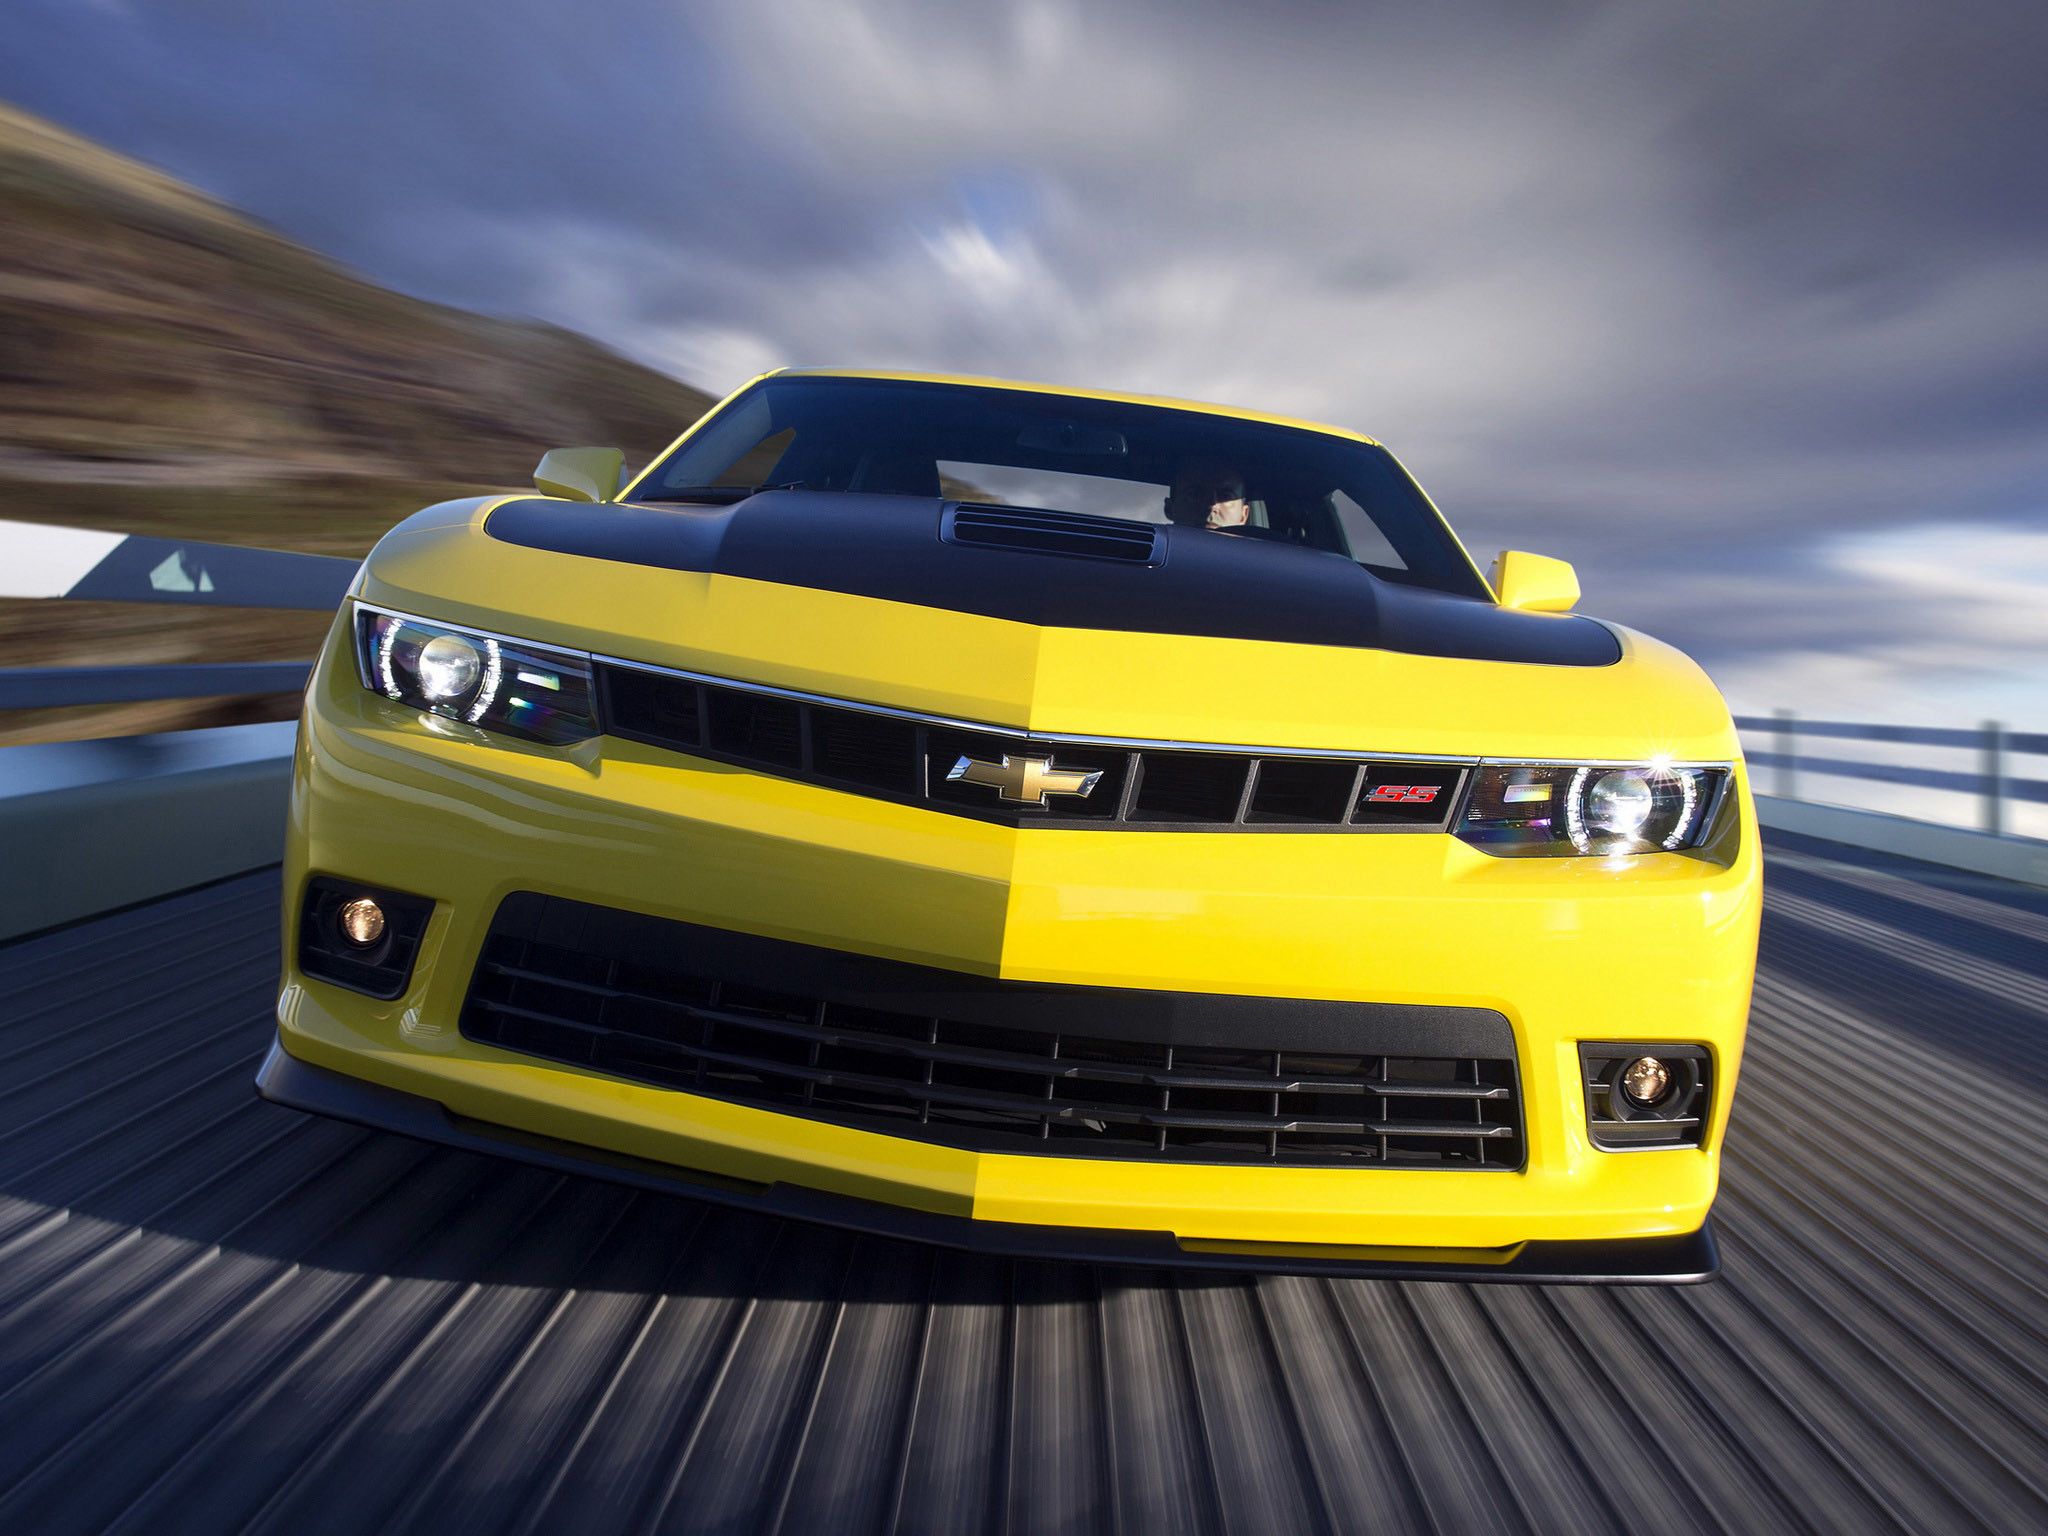 2048x1536 Chevrolet Camaro 2015 Z28 Yellow Car Wallpapers Android